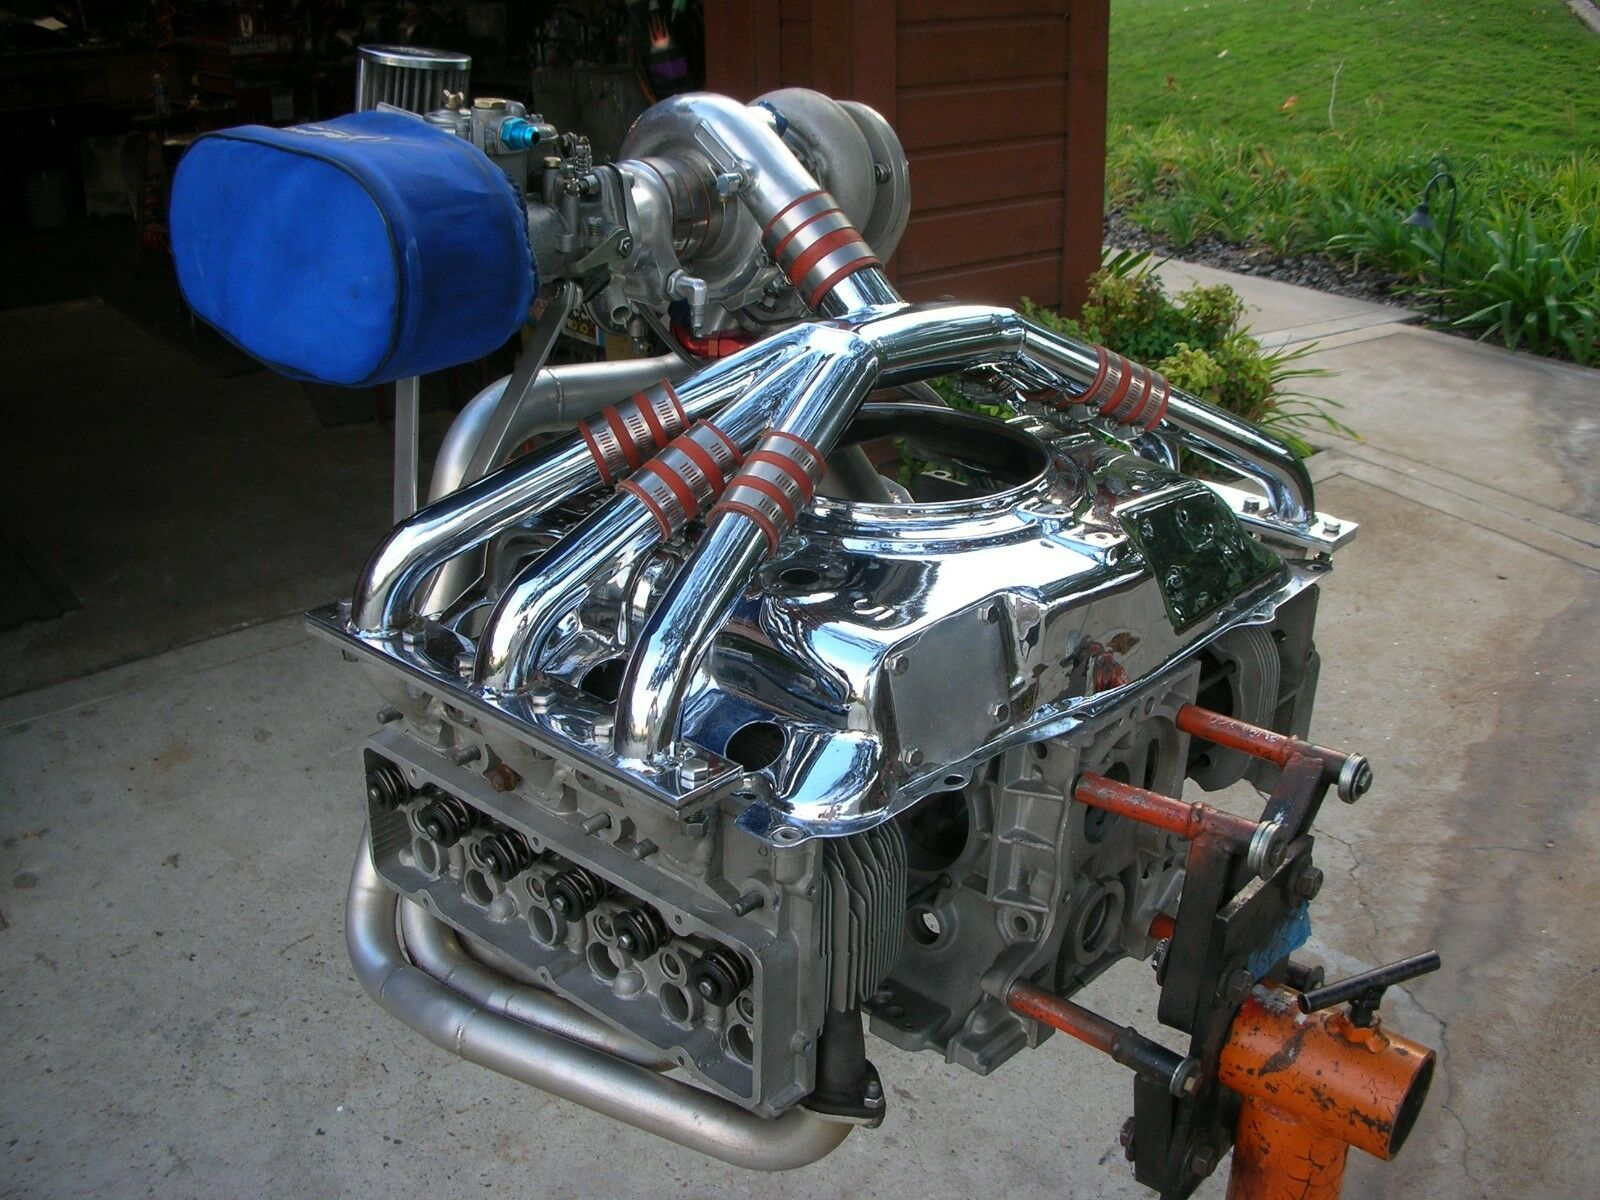 Almost All There Corvair: This Turbocharged Corvair Flat Six Is A Neat Engine But The Buyer Comes Up A Little Short On Parts